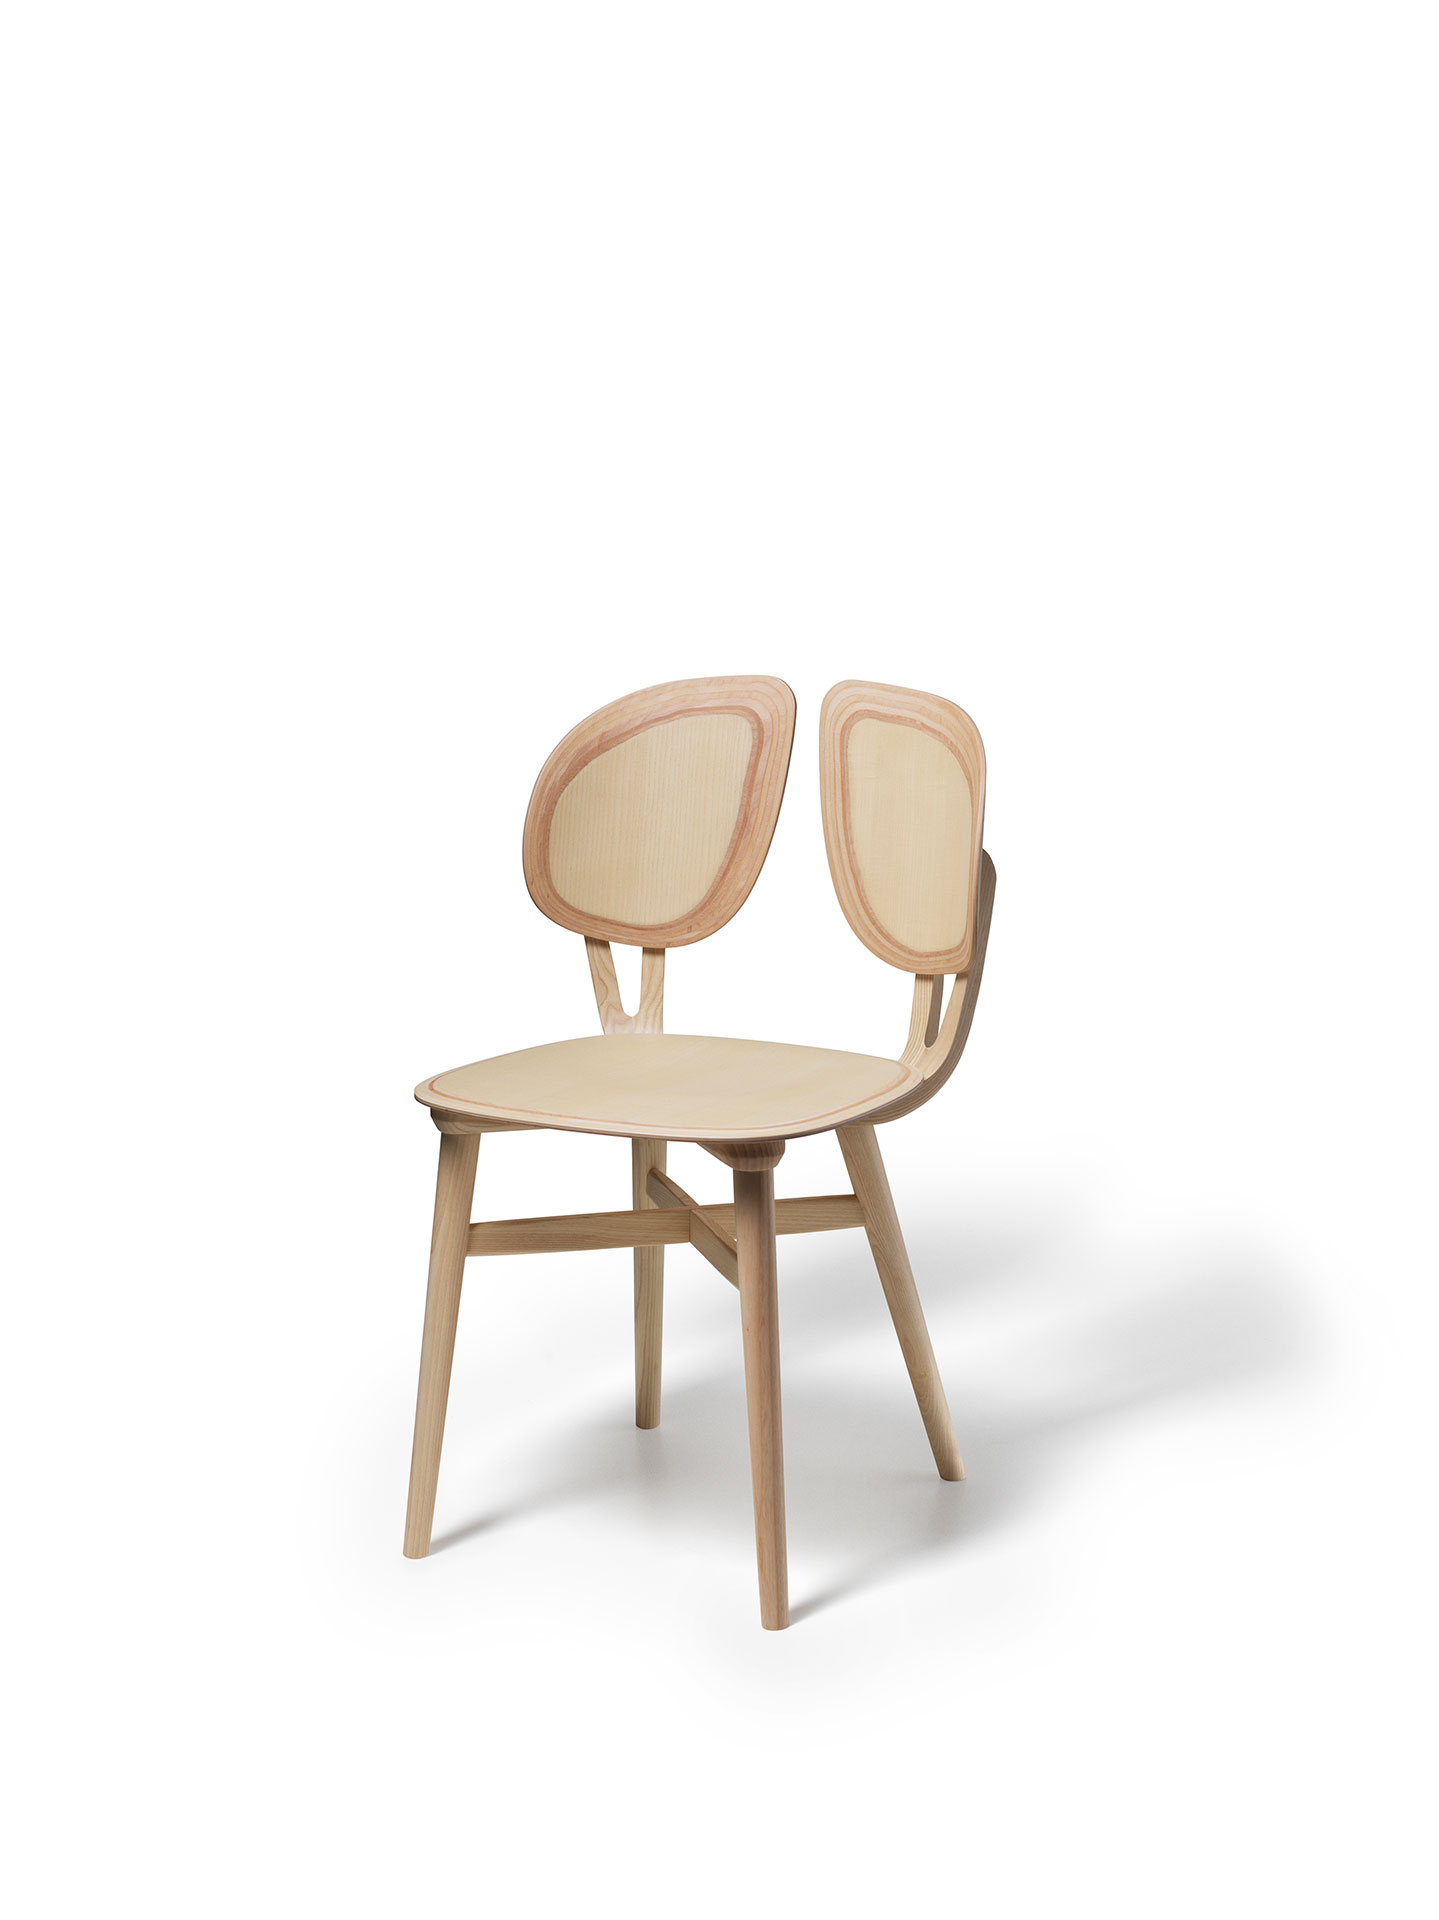 Chair 'Filla'